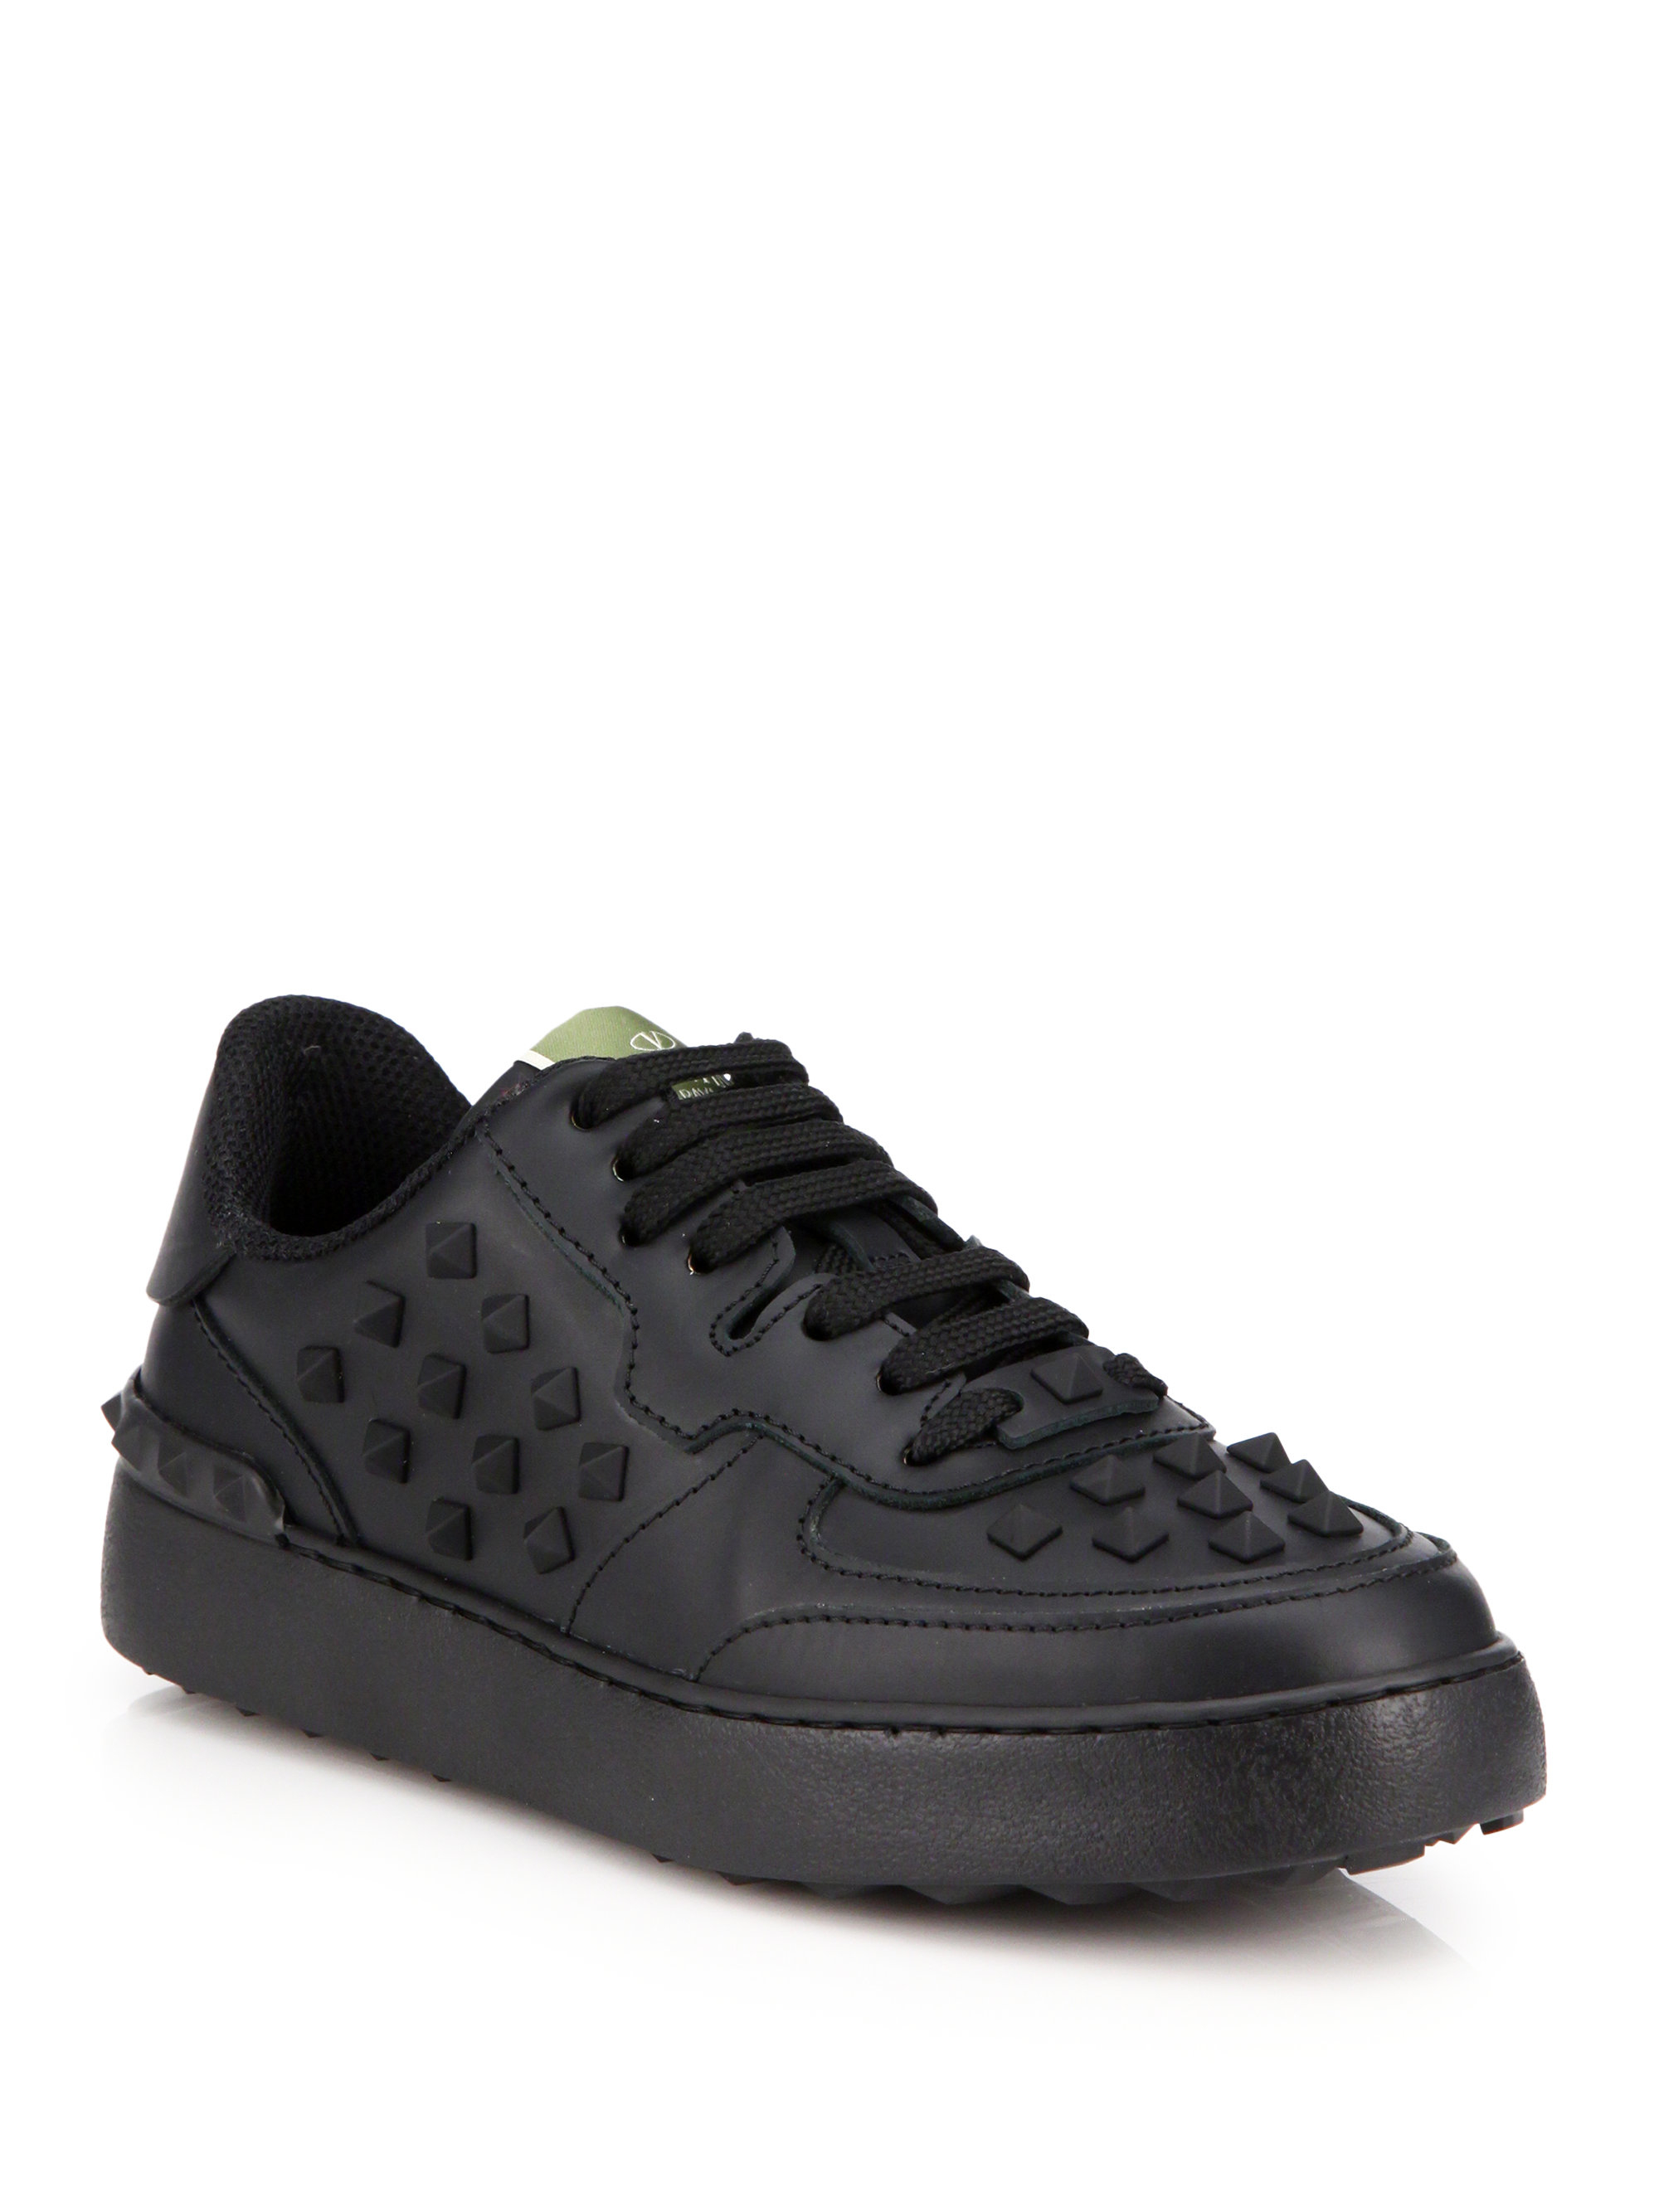 Valentino Studded Leather Sneaker PVqWvmZE4